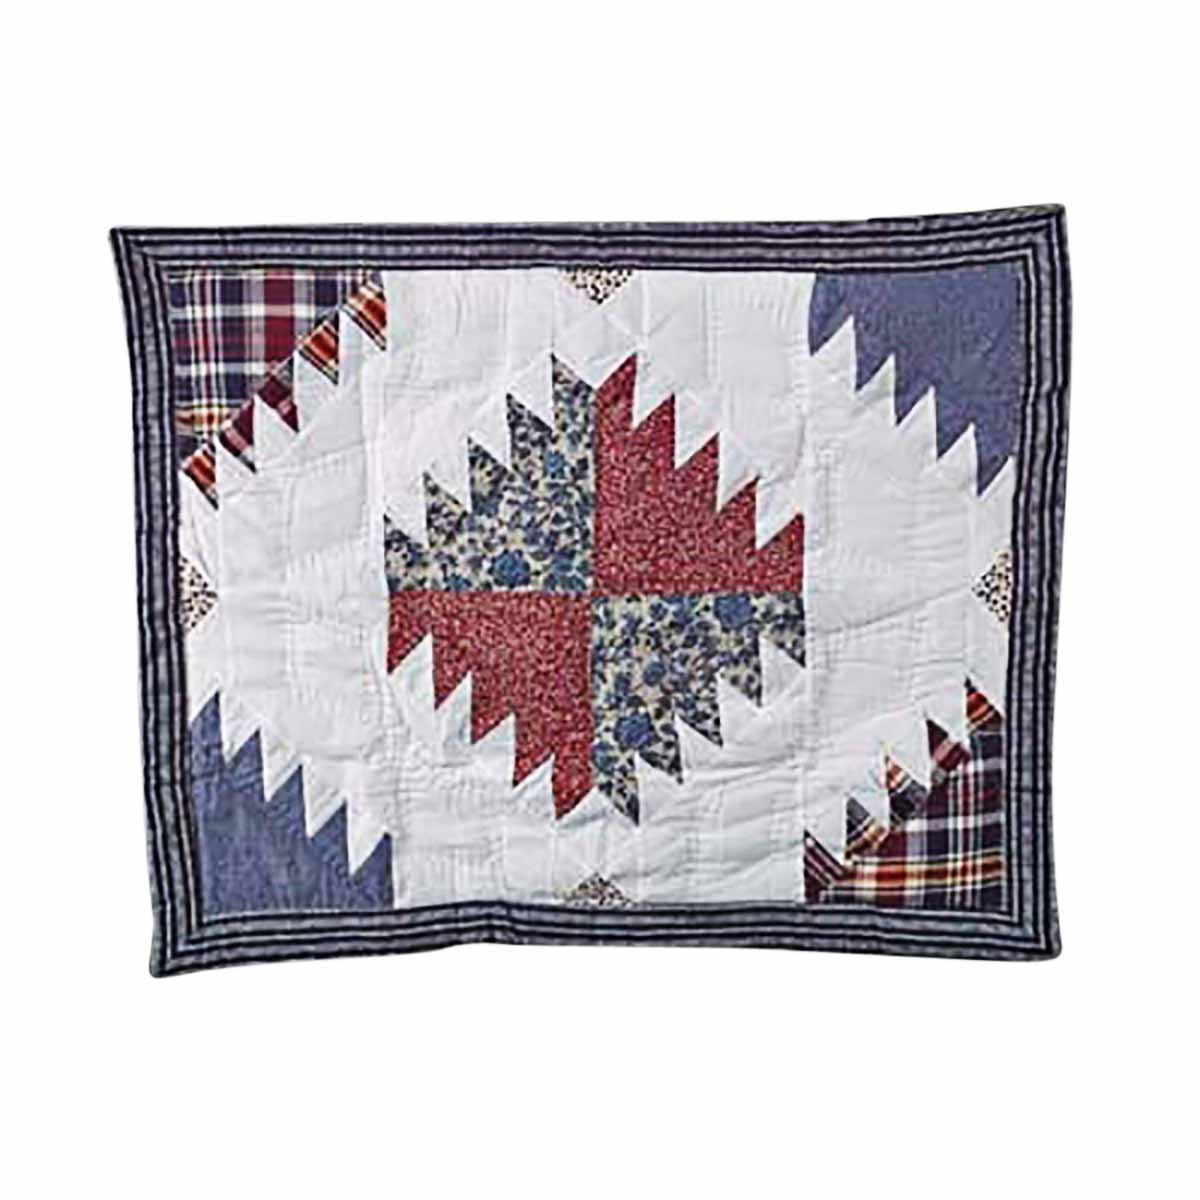 Cotton PIllow Sham Red White and Blue | Renovator's Supply